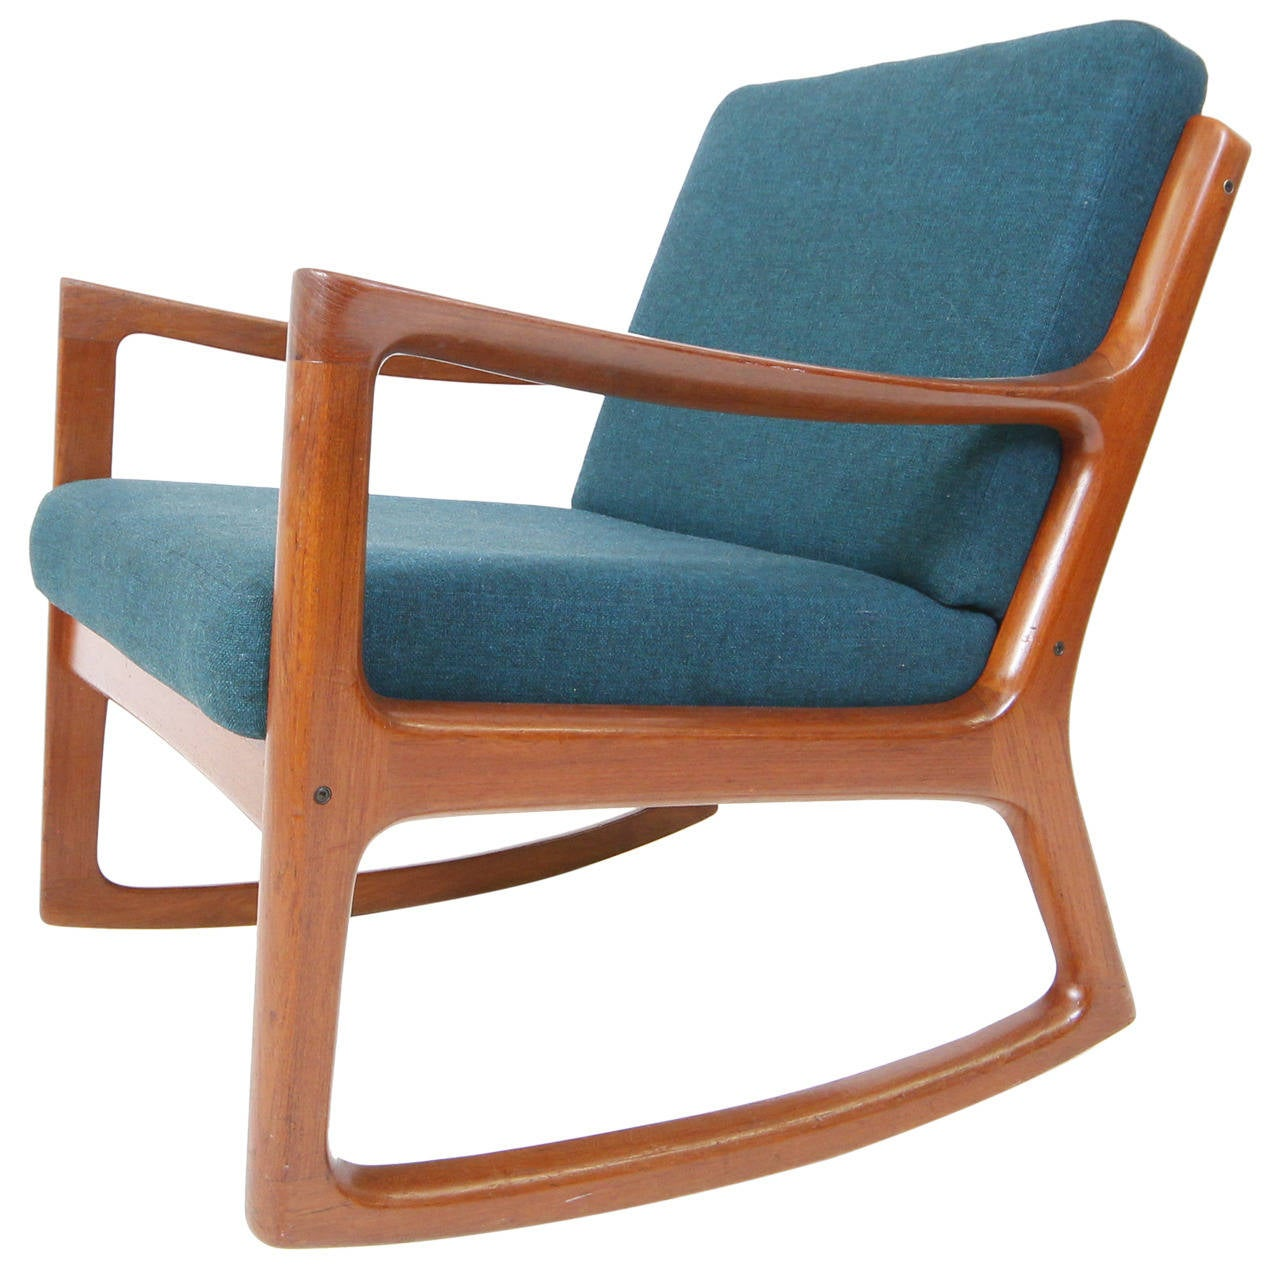 danish modern rocking chair by ole wanscher at 1stdibs. Black Bedroom Furniture Sets. Home Design Ideas